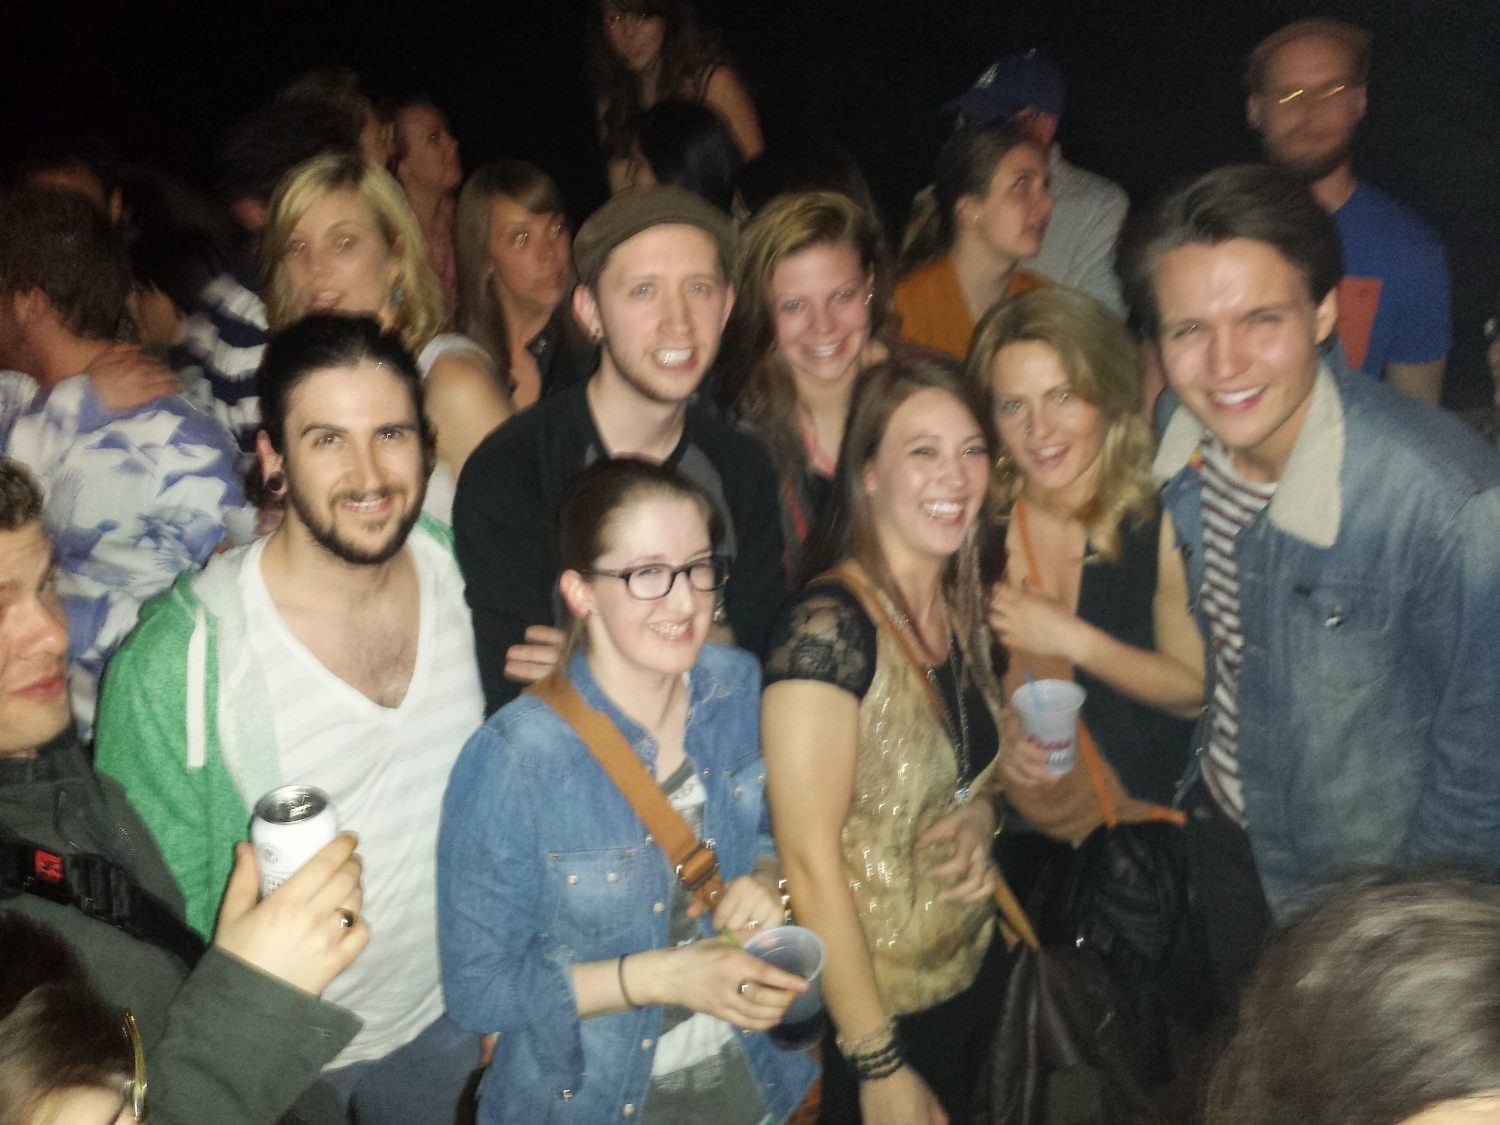 At the Head and the Heart concert